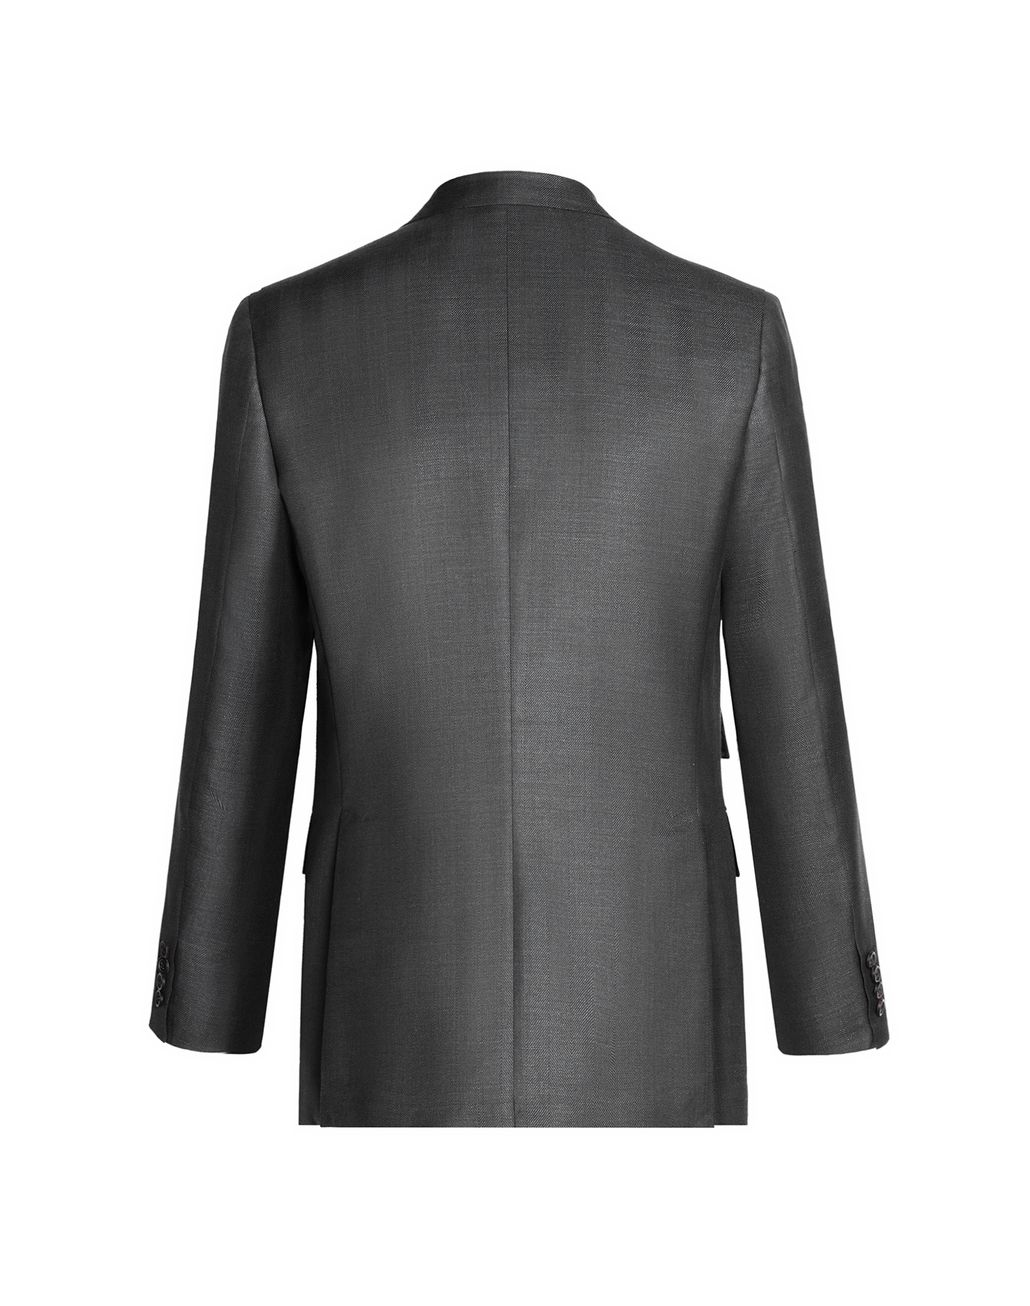 BRIONI Grey Herringbone Jacket Jackets U r